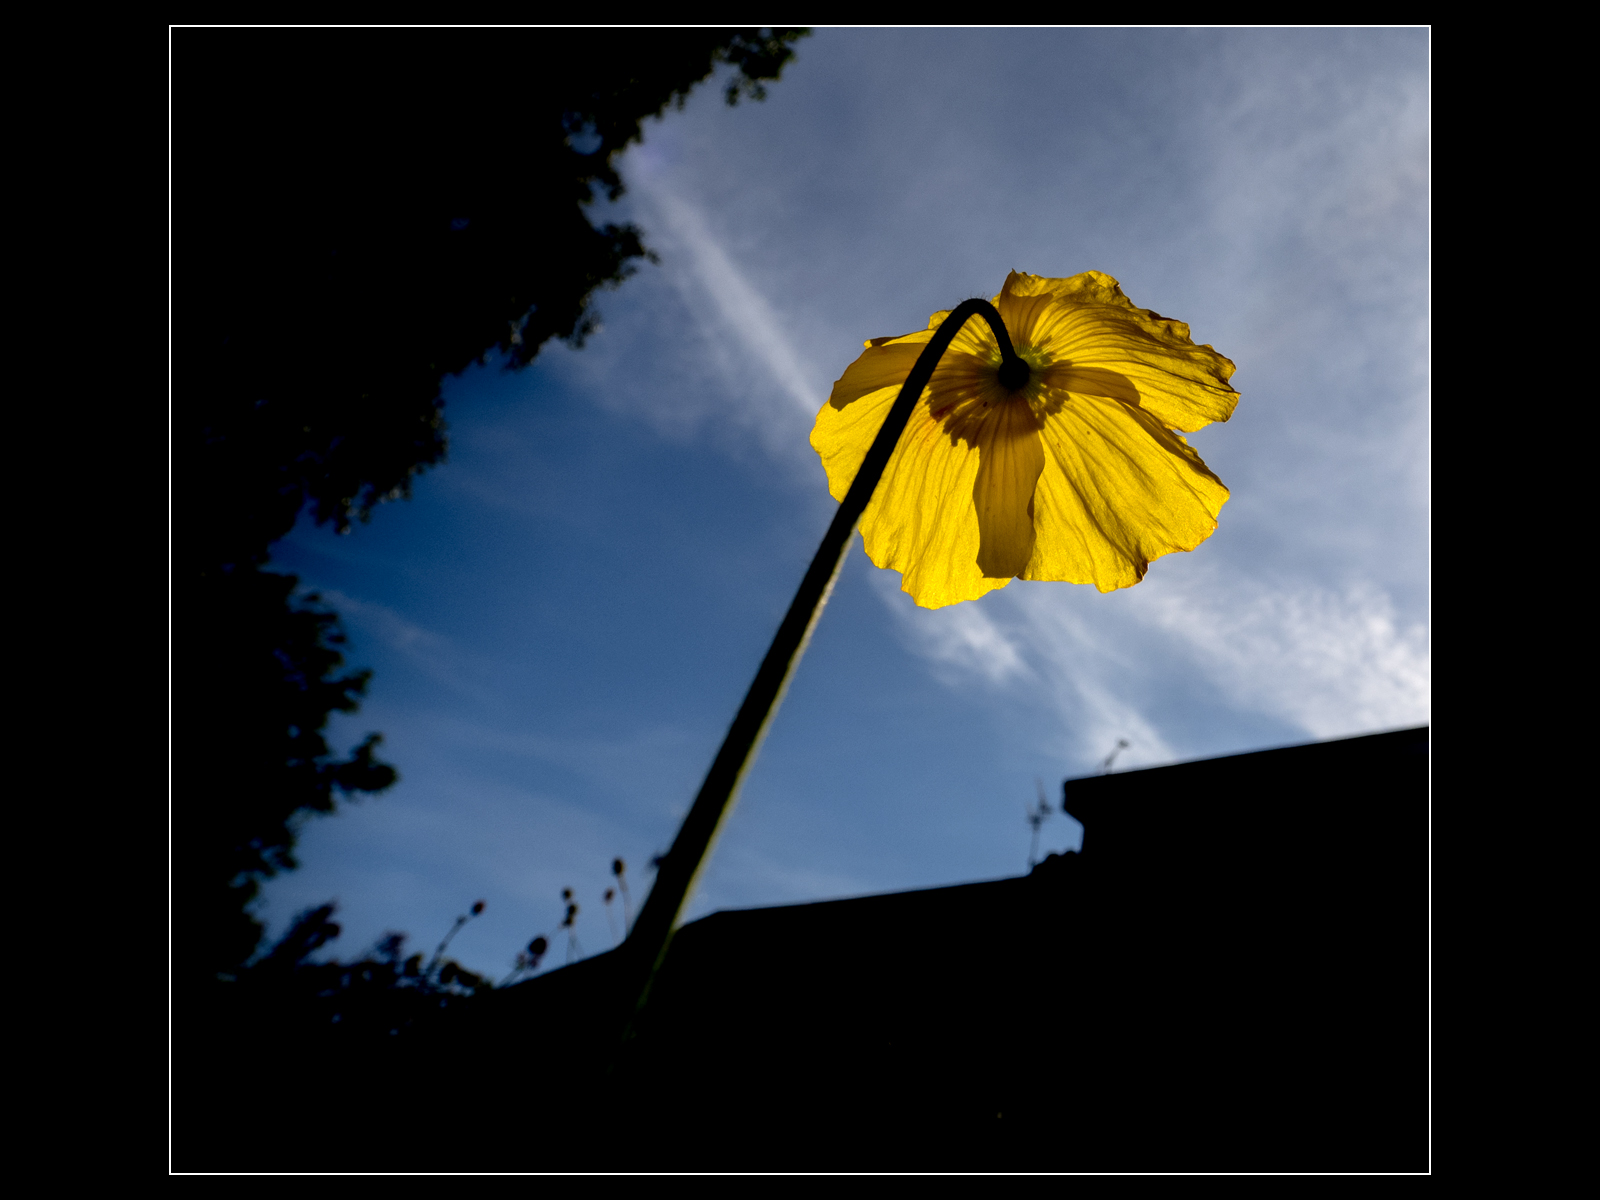 Welsh poppy reaches to the sky